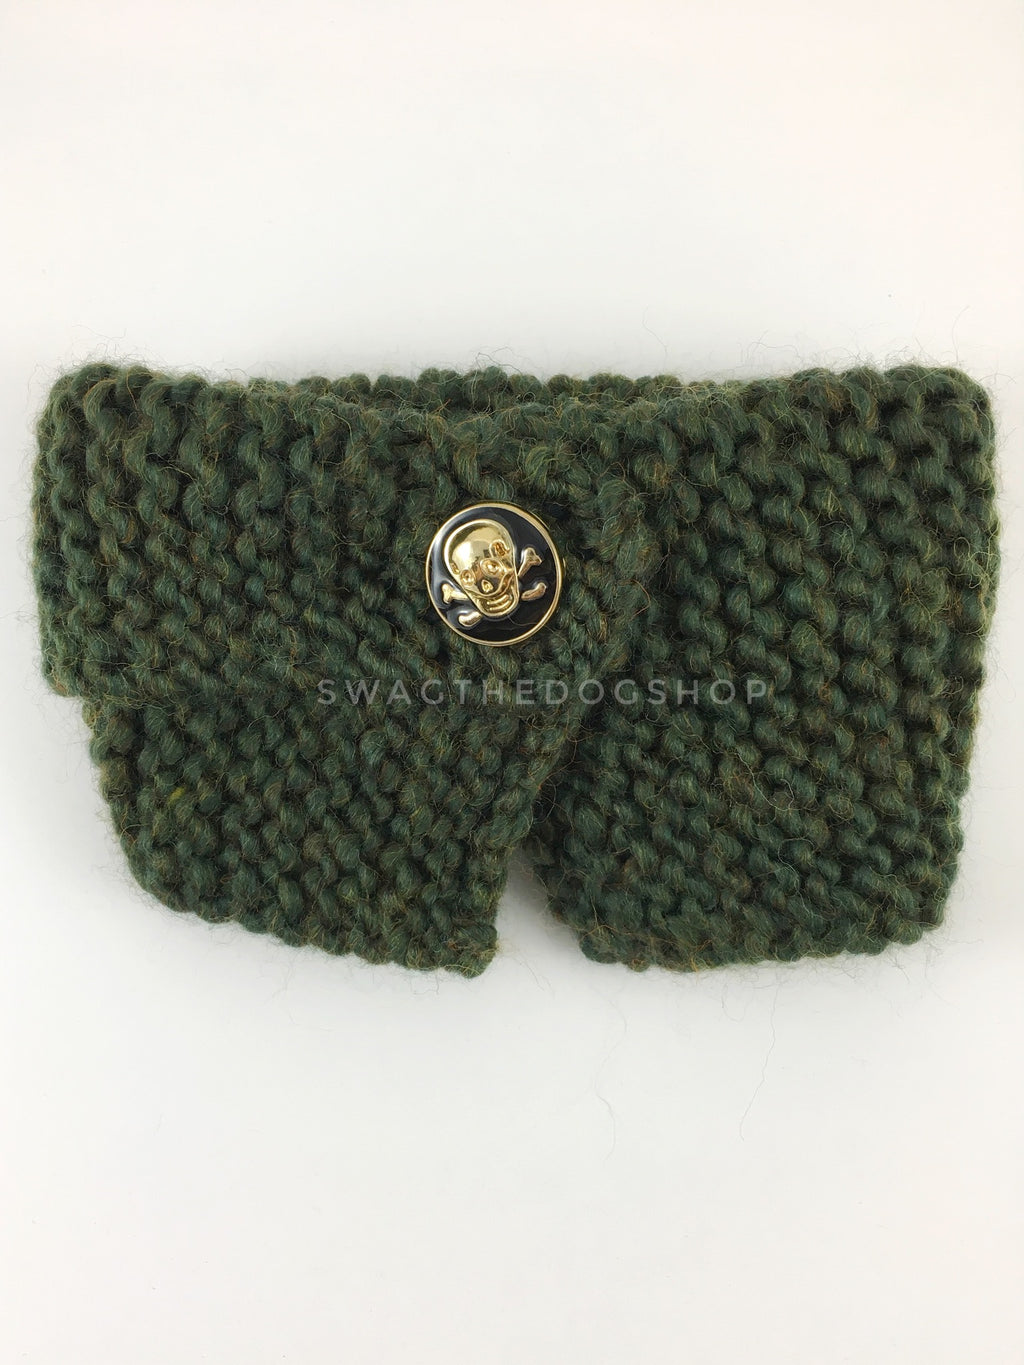 Army Green Swagsnood - Product Front View. Army Green Color Dog Snood with Accent Button